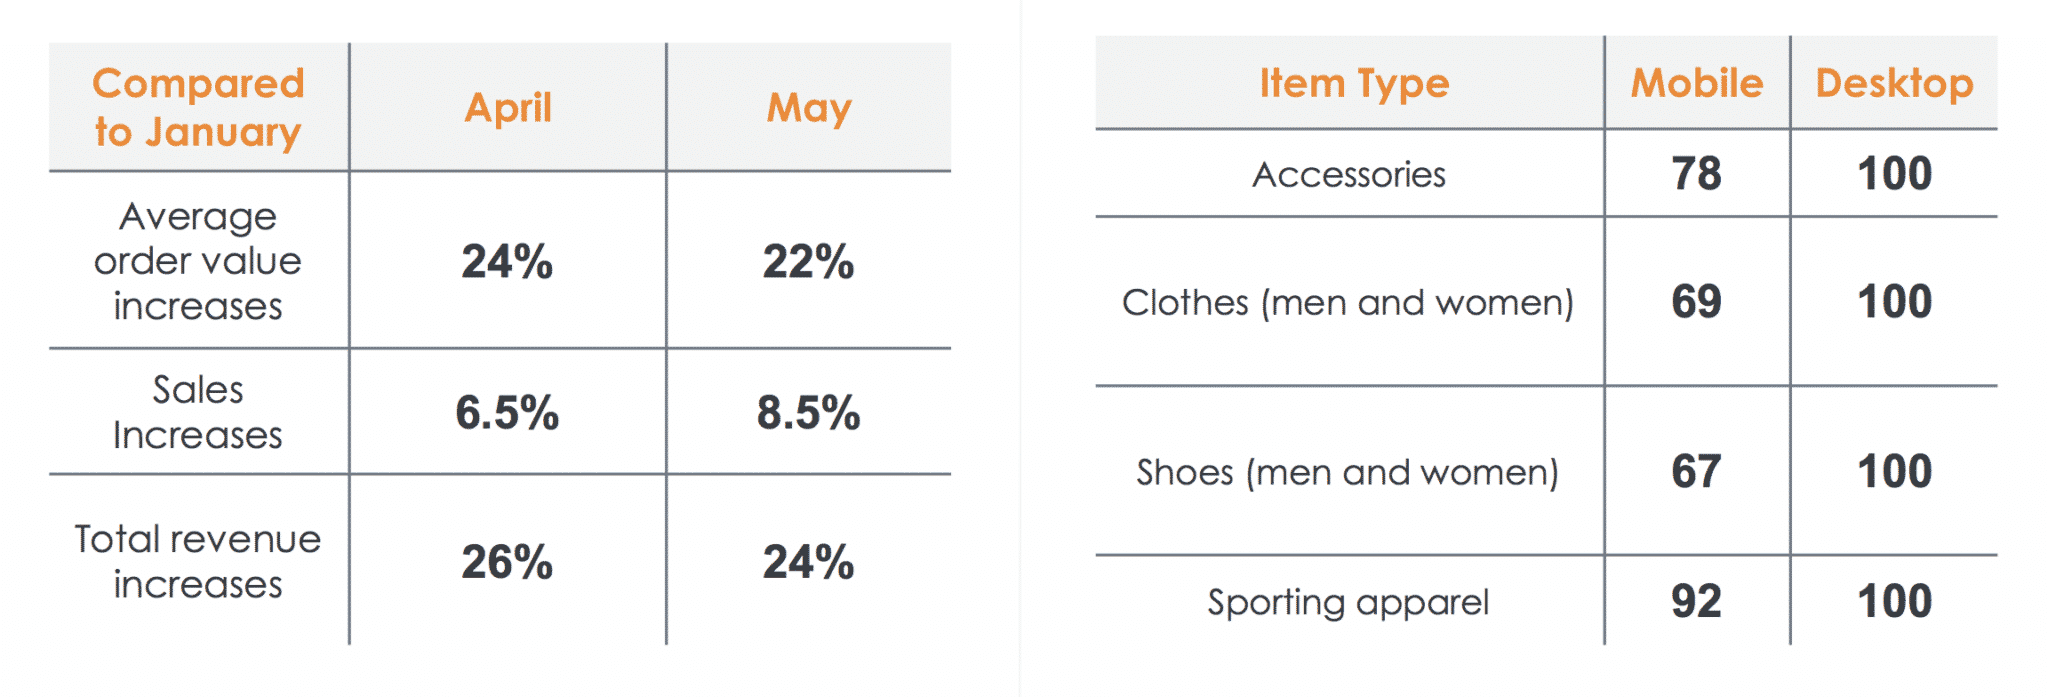 Criteo Spring Apparel Retail Trends